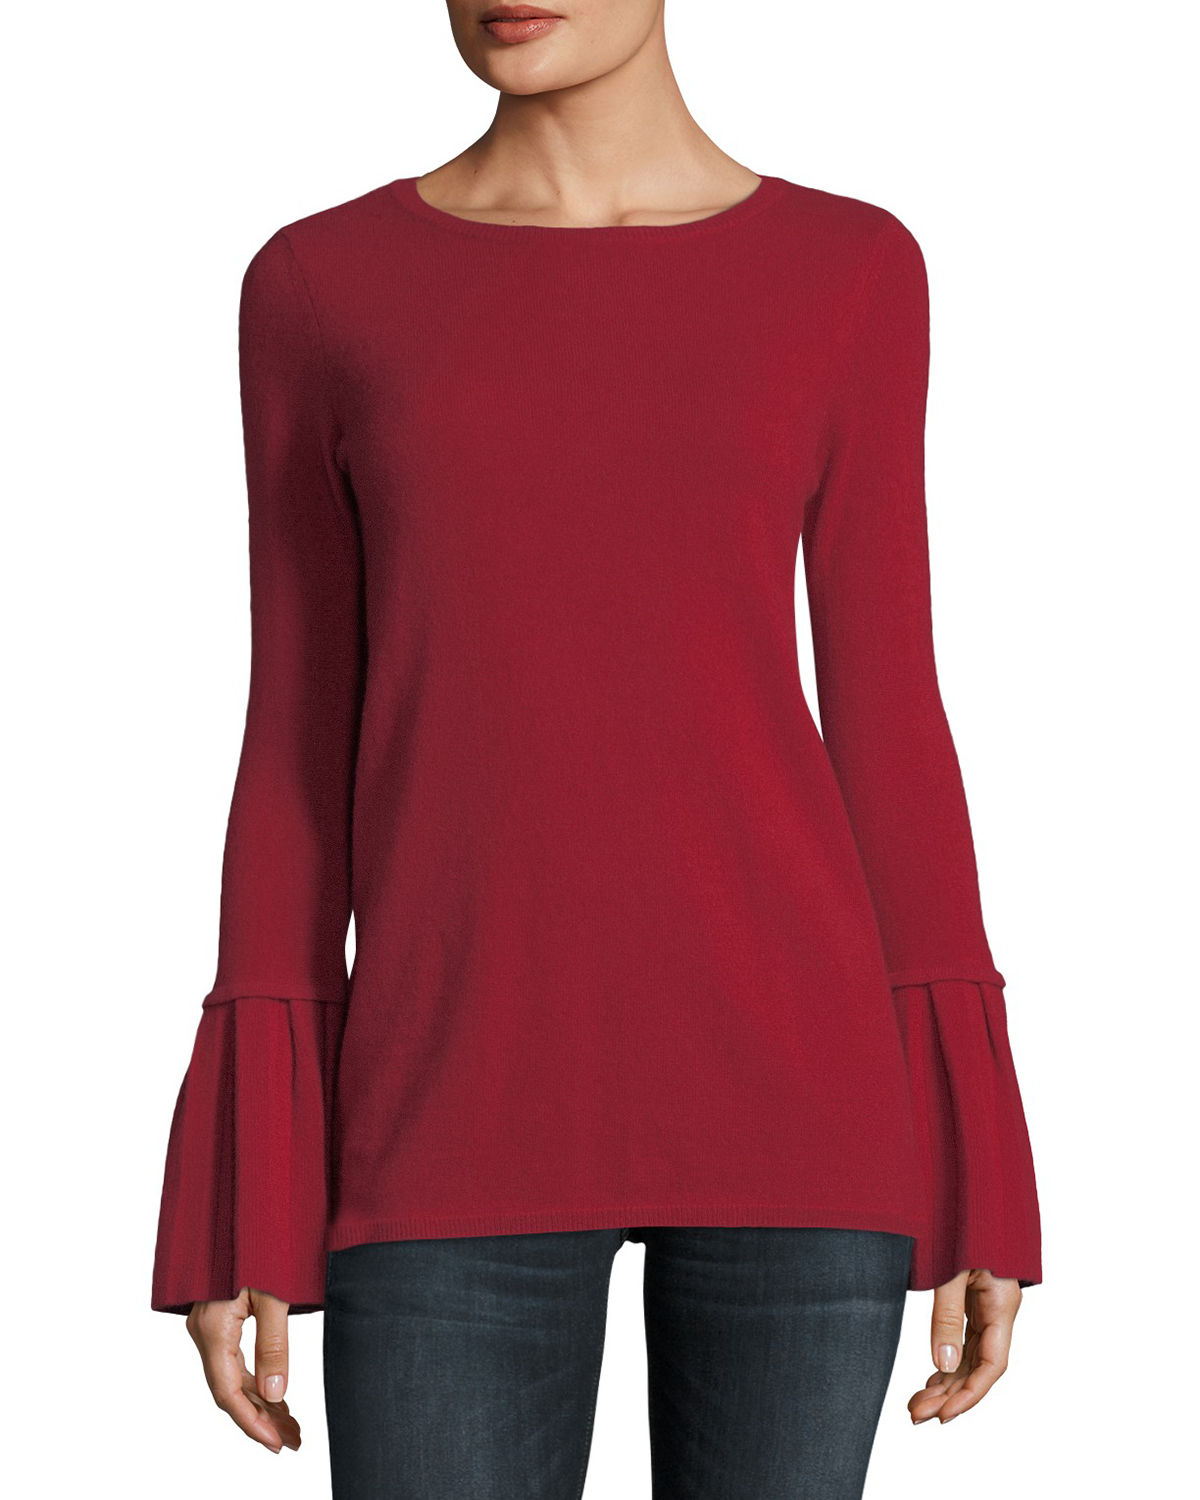 Neiman Marcus Cashmere Collection Cashmere Boatneck: Neiman Marcus Cashmere Collection Pleated Bell-Sleeve Boat